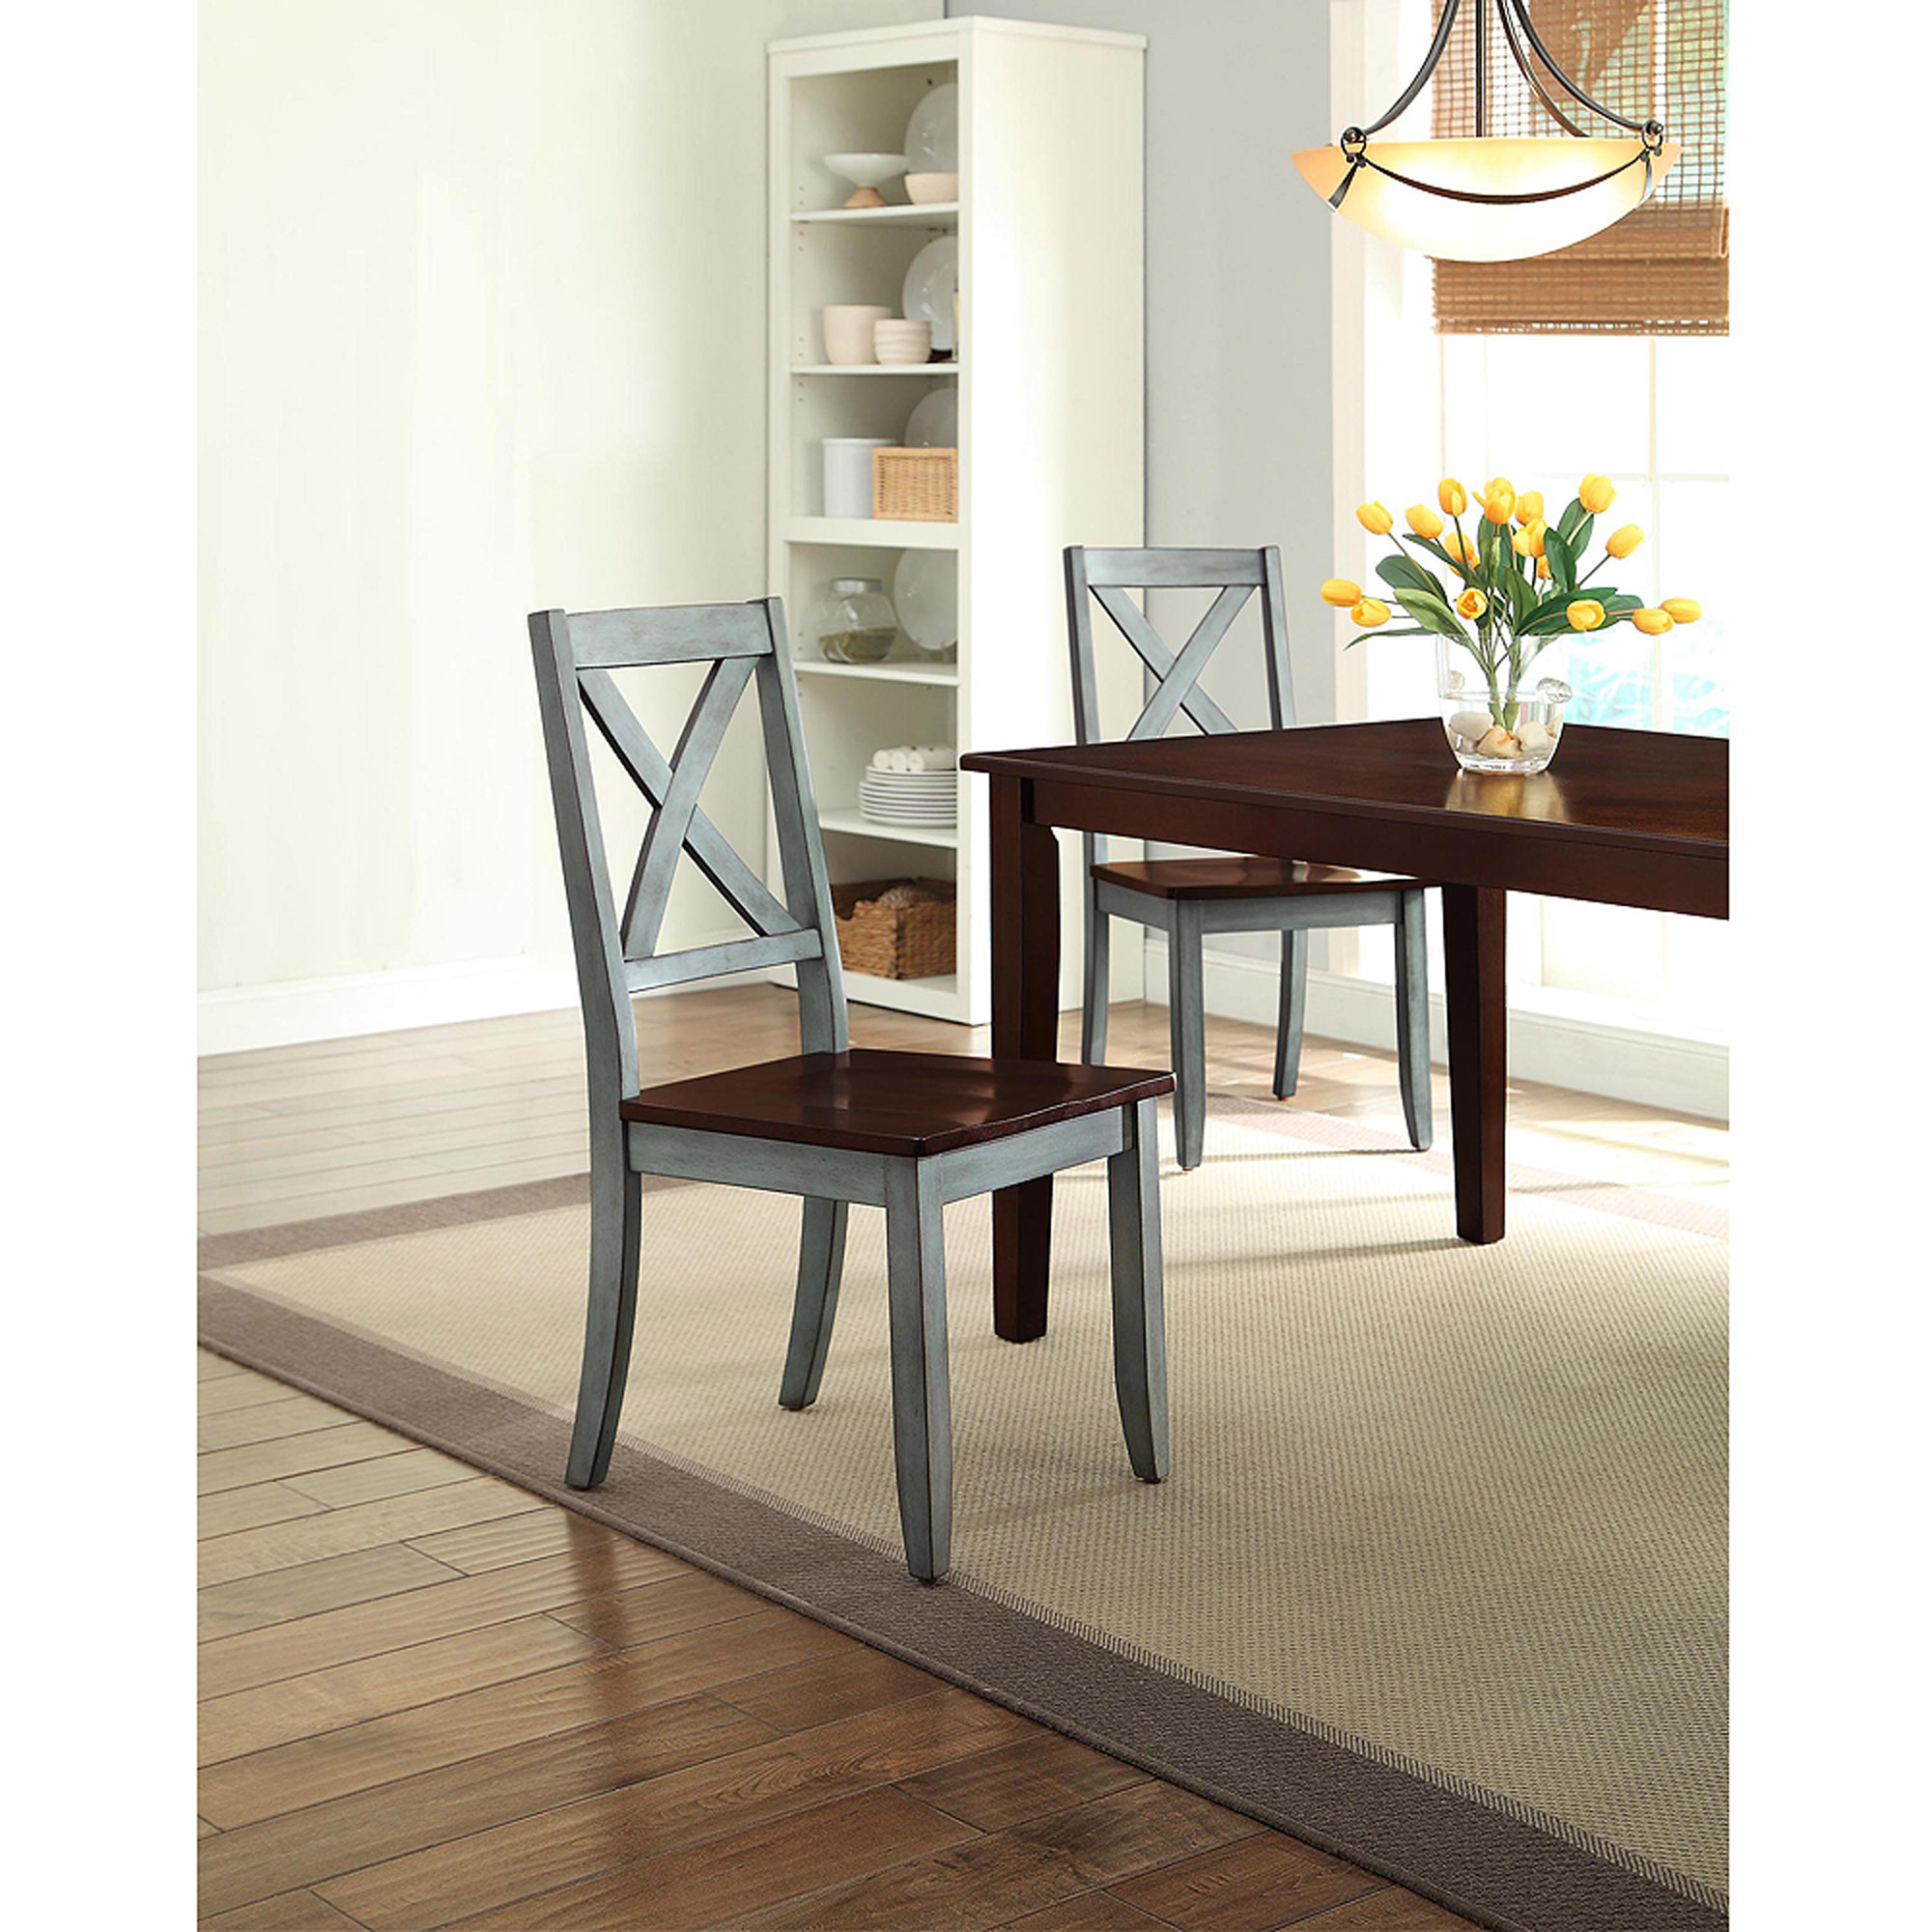 better homes and gardens maddox crossing dining chair, blue, set